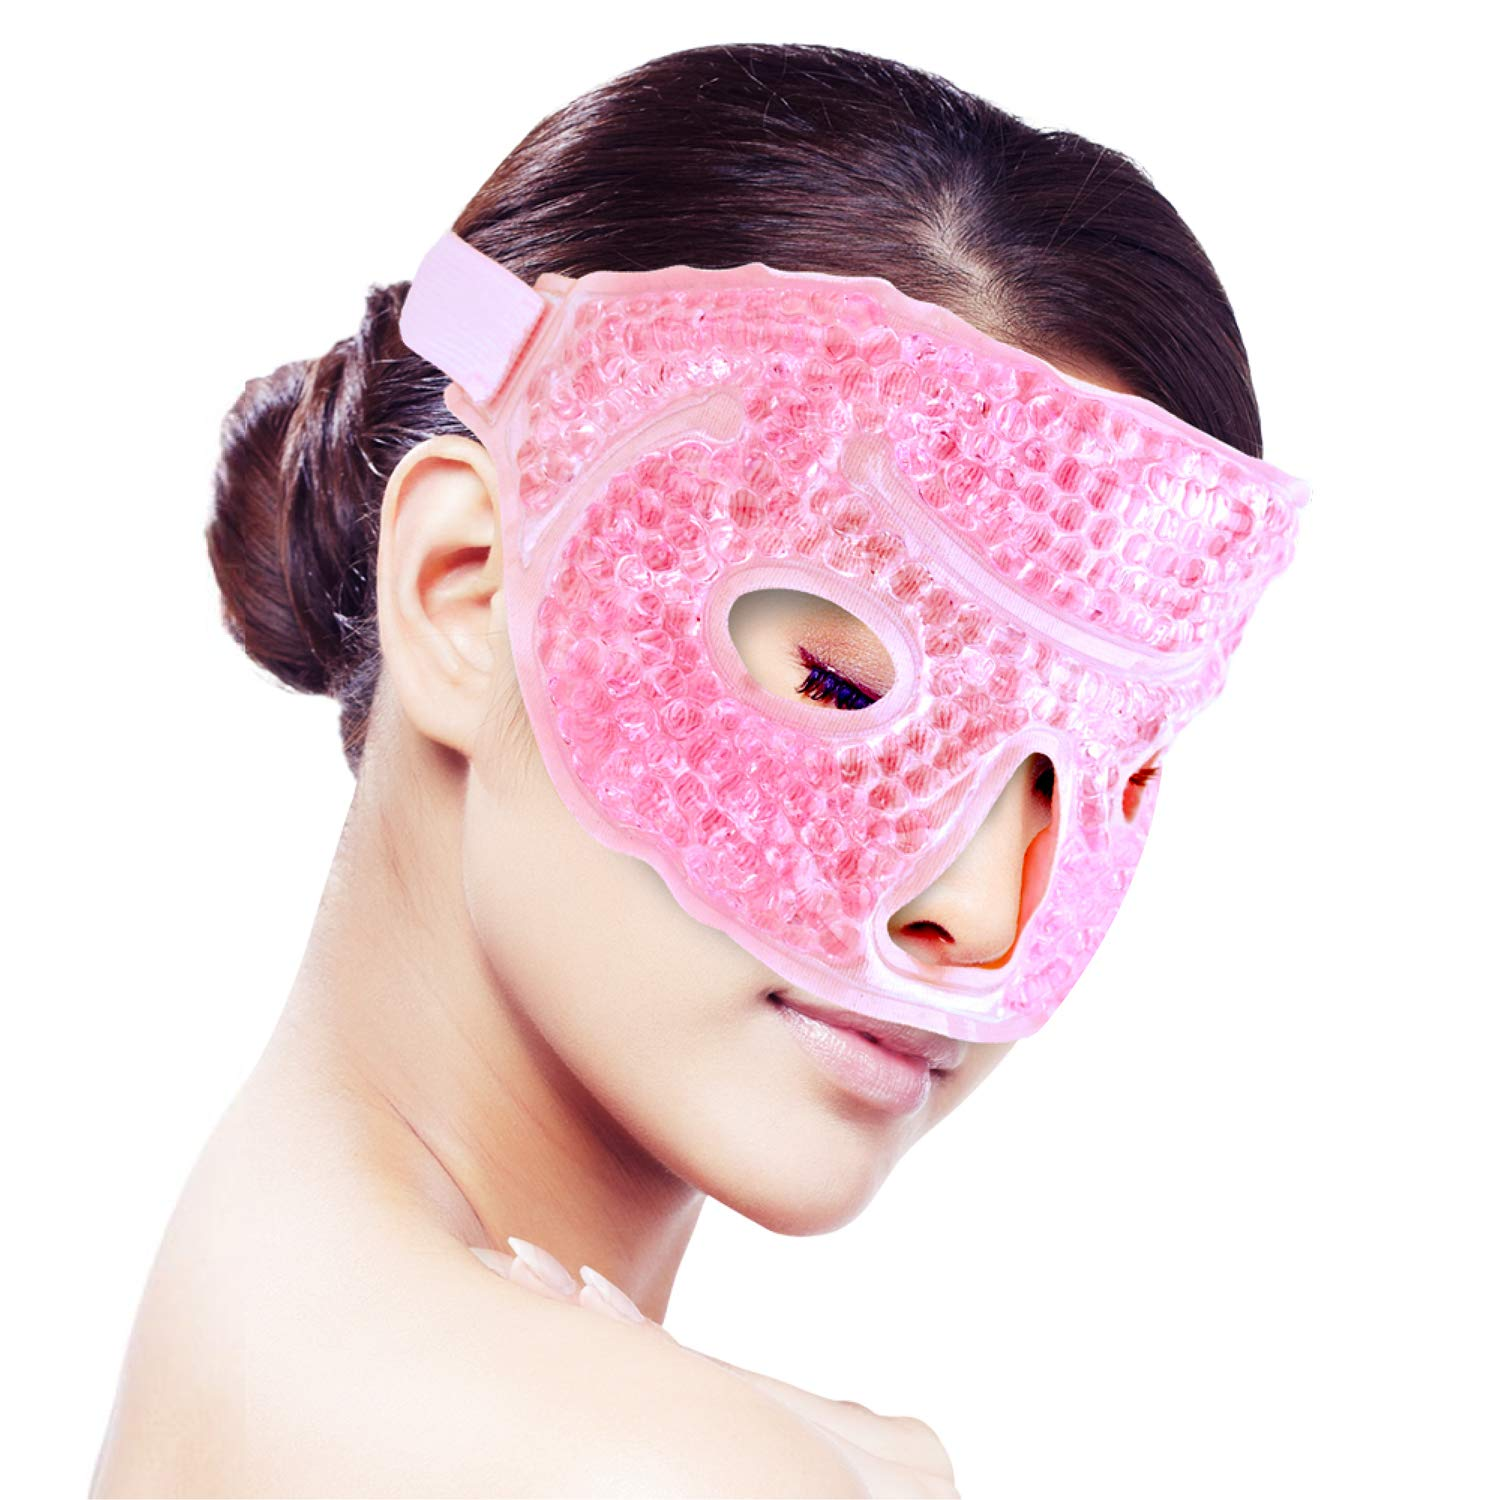 Ice Face/Eye Mask for Woman Man, Hot/Cold Eye Patch Blinder Reusable Gel Beads Ice Mask,Hot Cold Therapy Packs Bag for Facial Pain,Sleeping,Swelling,Migraines, Headaches,Stress Relief[Pink]